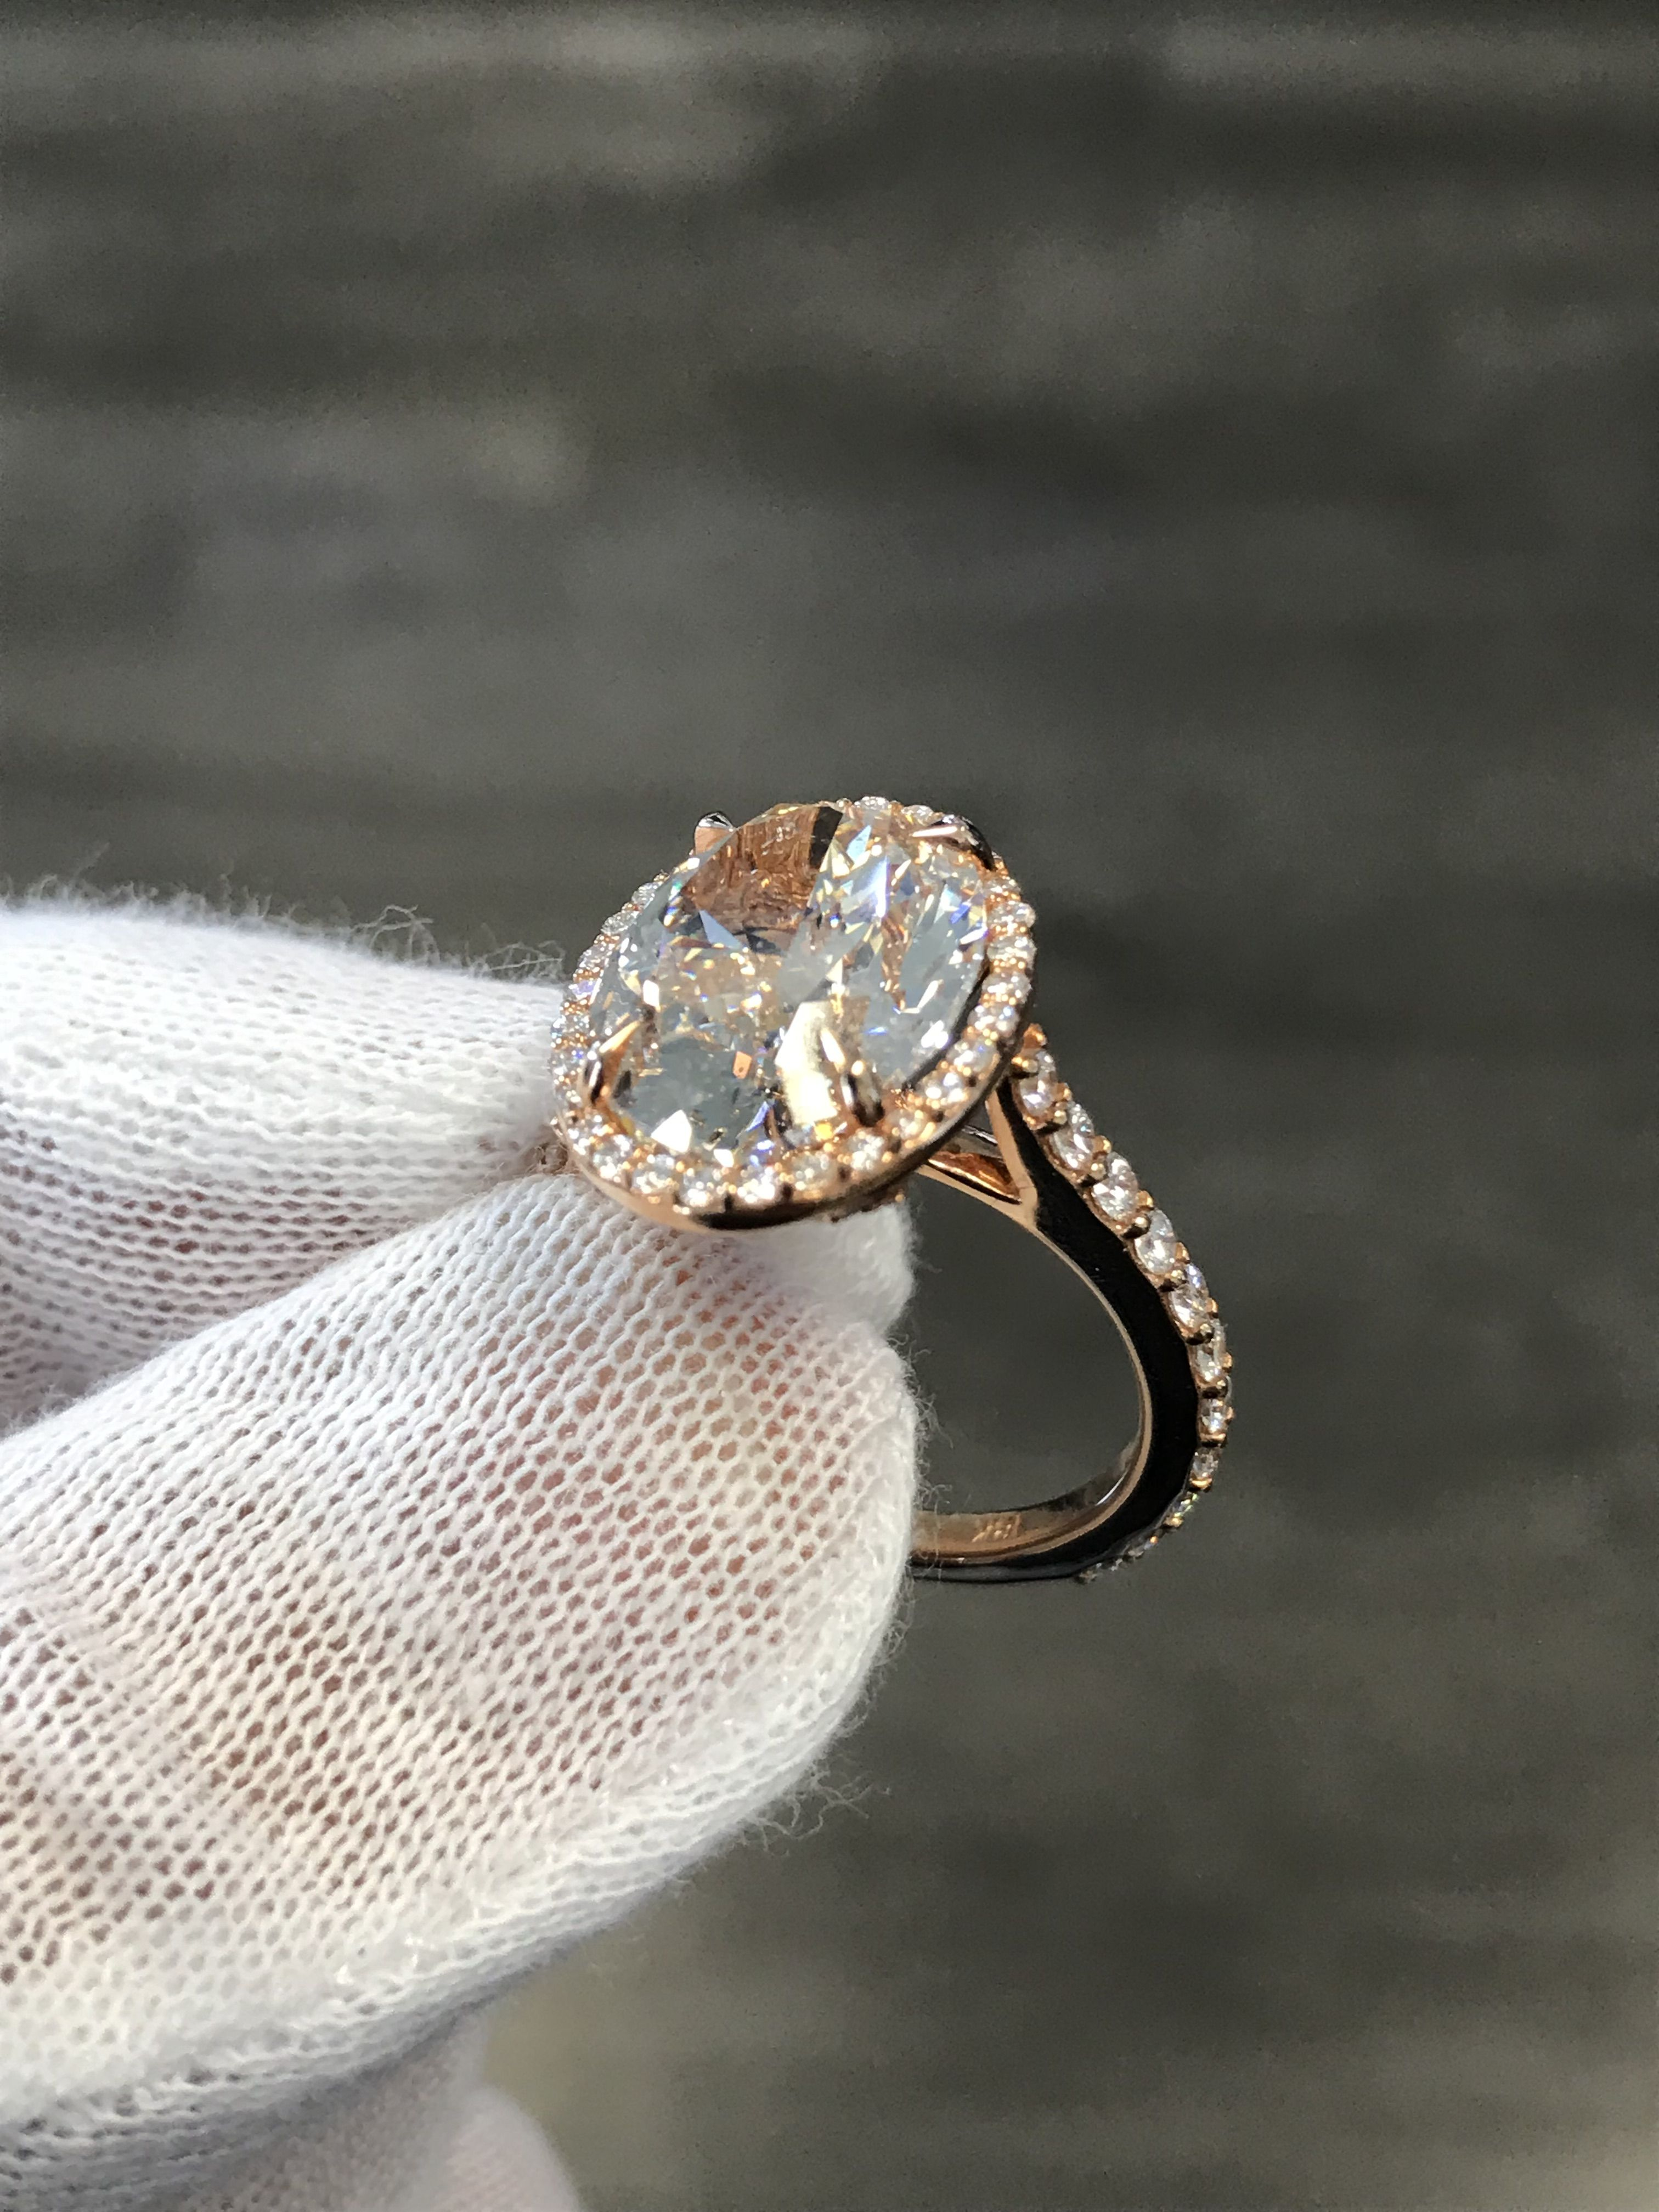 Diamond Financing How You Can Finance The Ring Of Your Dreams Wedding Rings Vintage Diamond Engagement Rings Vintage Vintage Wedding Rings Rose Gold